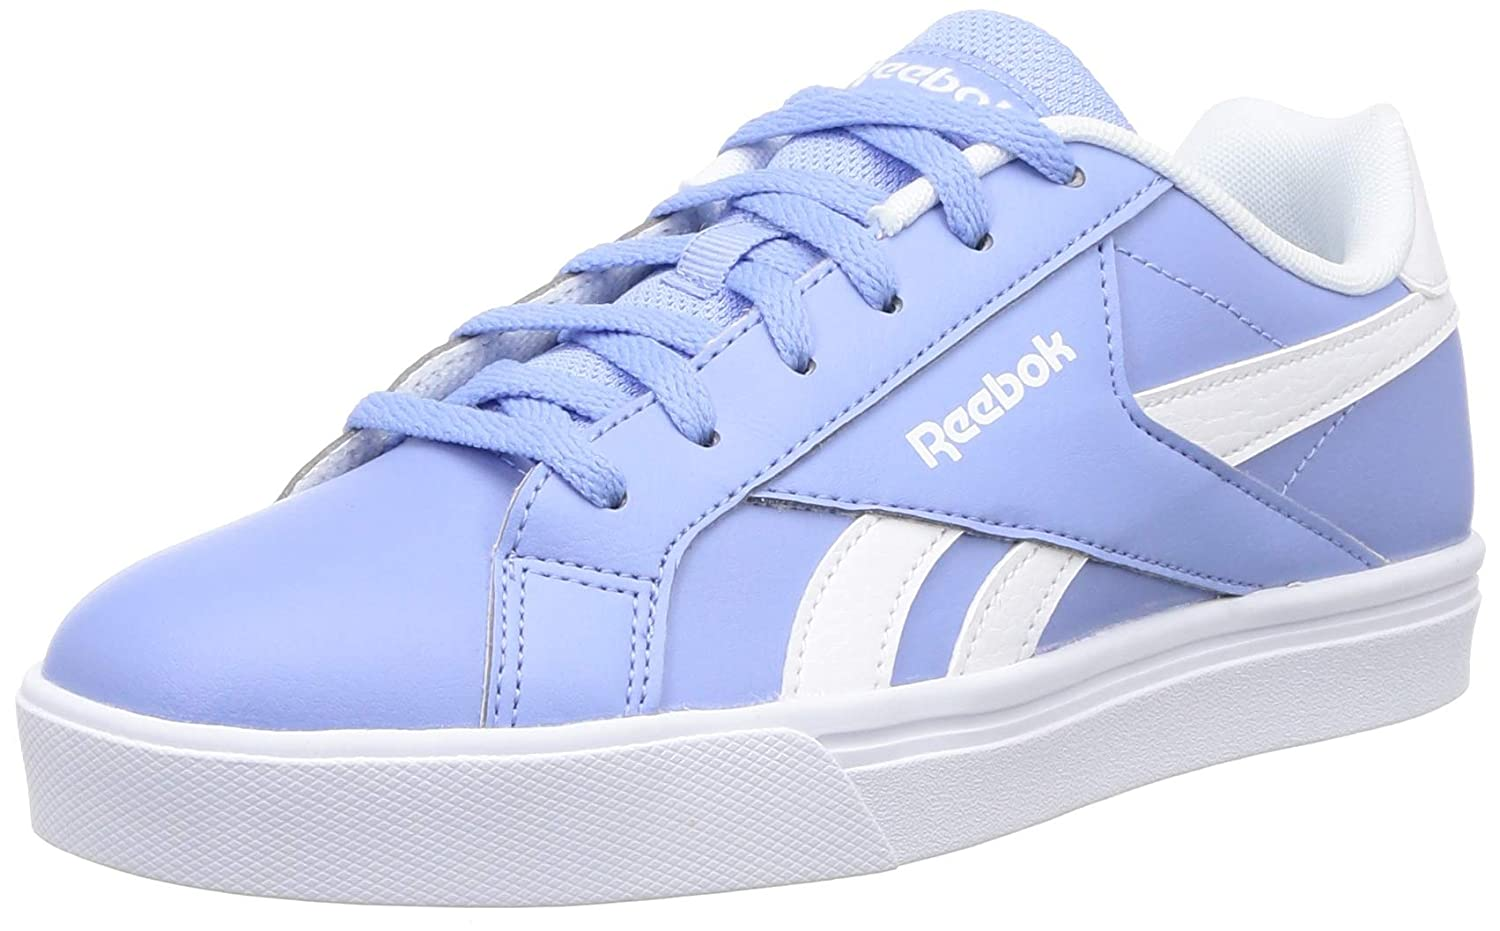 Reebok Women's Royal Complete3low Leather Tennis Shoes